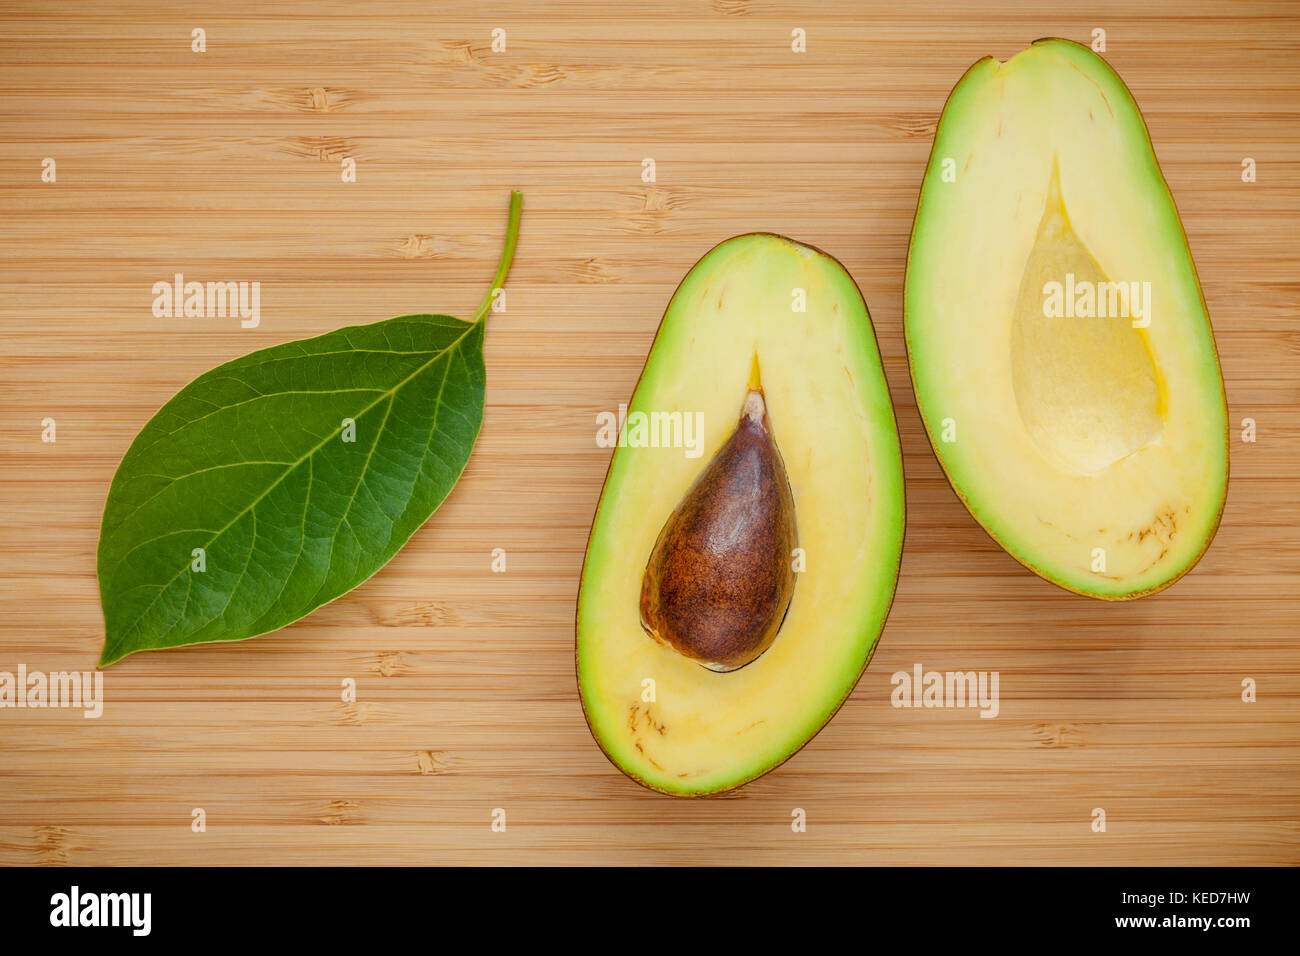 Healthy food concept. Closeup ripe avocado with avocado leaves on wooden background. Halved organic avocado with - Stock Image